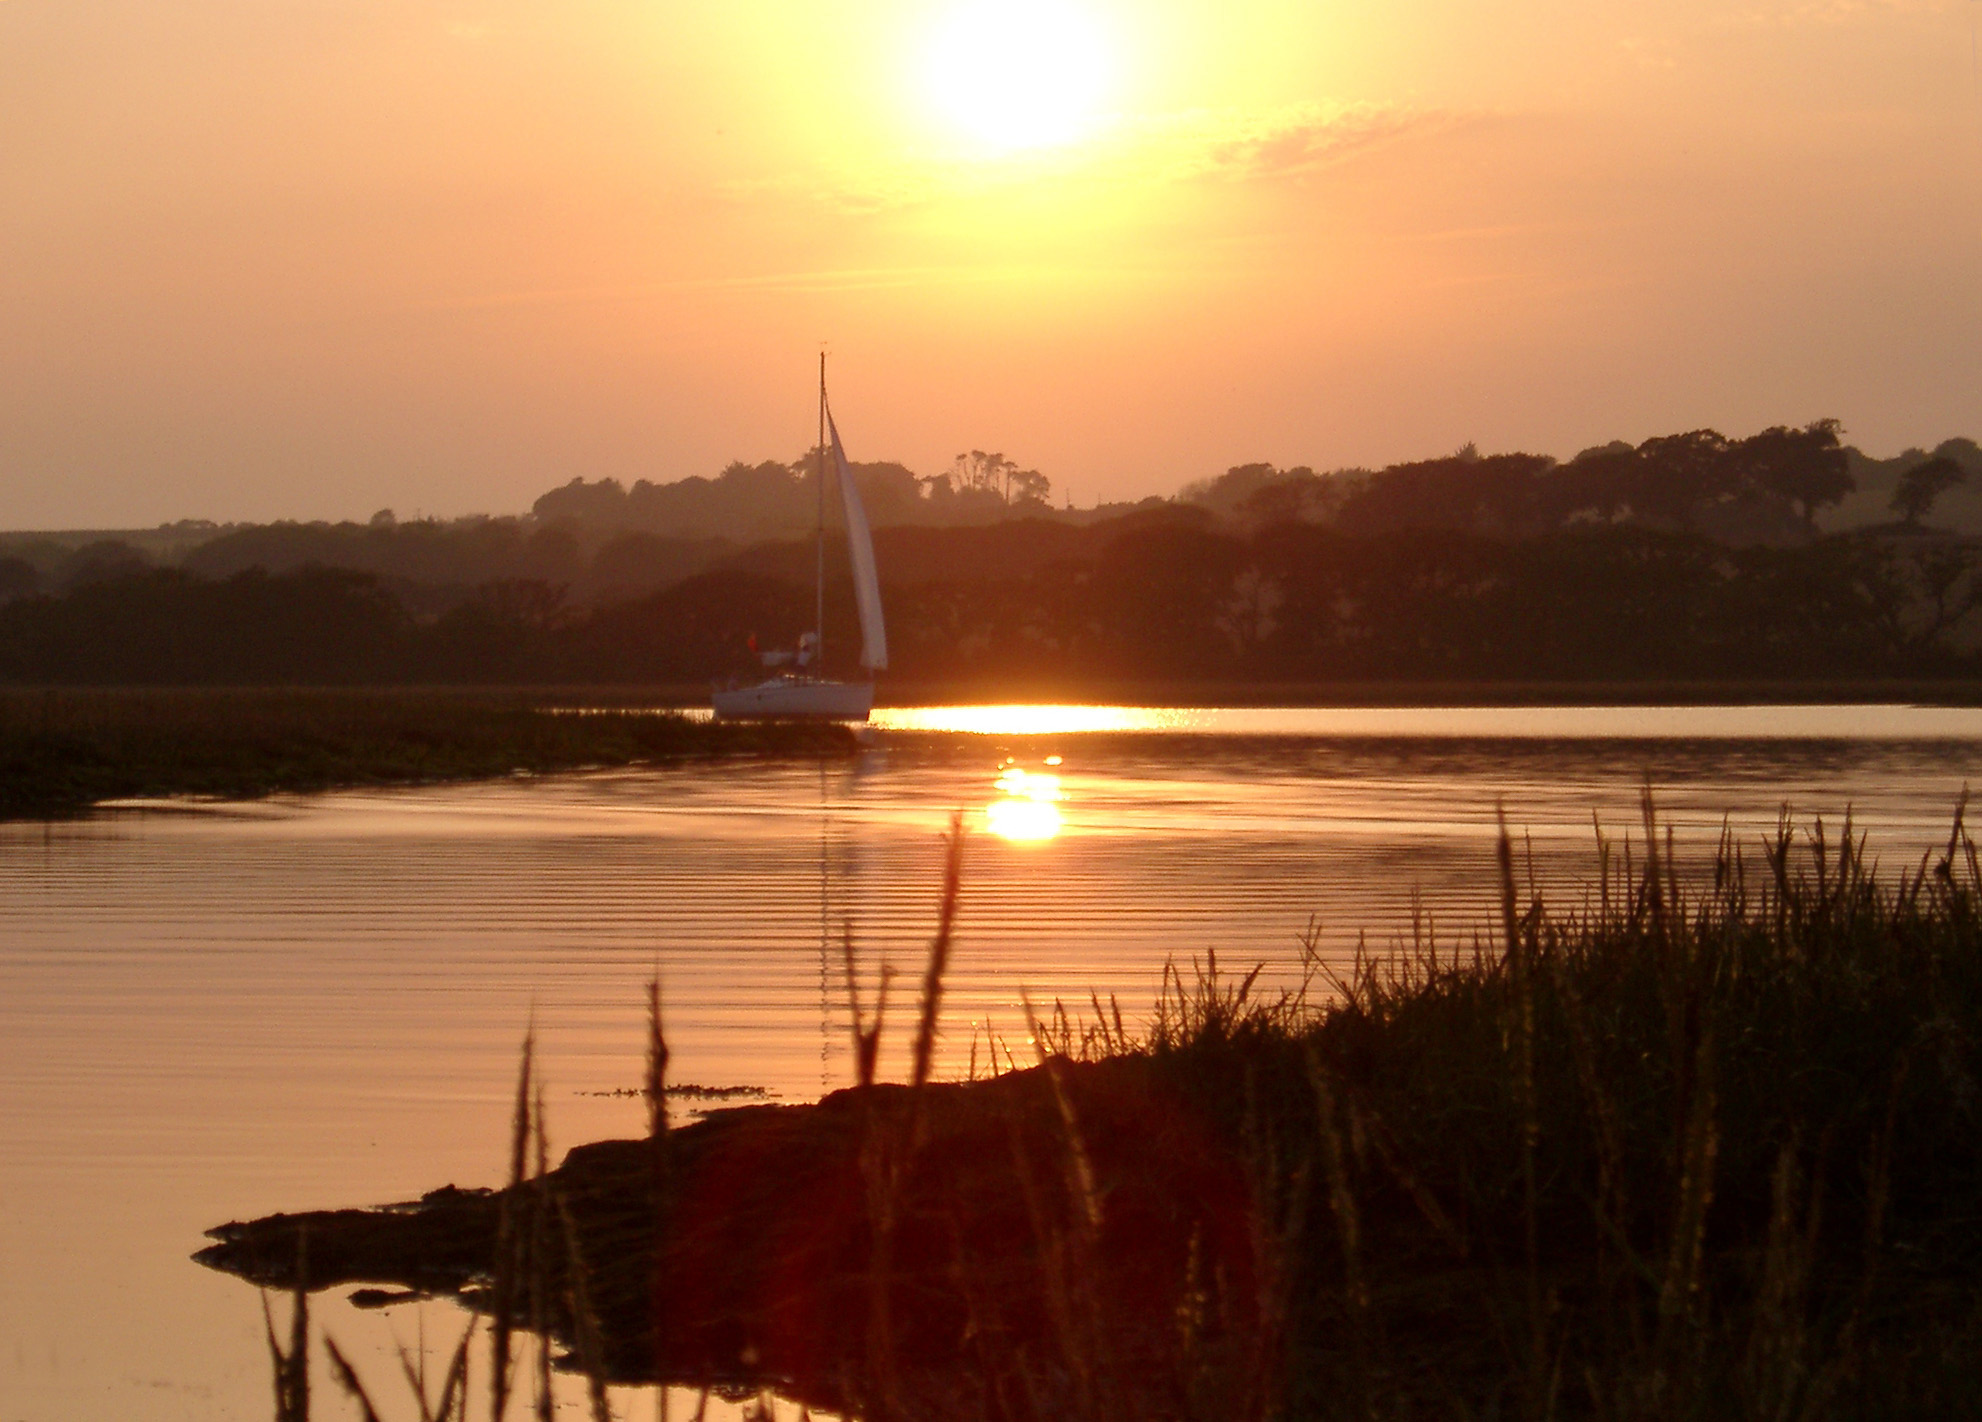 River Yar, Isle of Wight, which starts at Freshwater Bay, on the south coast of the island and flows only a few miles north to Yarmouth viewed at sunset with the orange sun reflected in the calm water